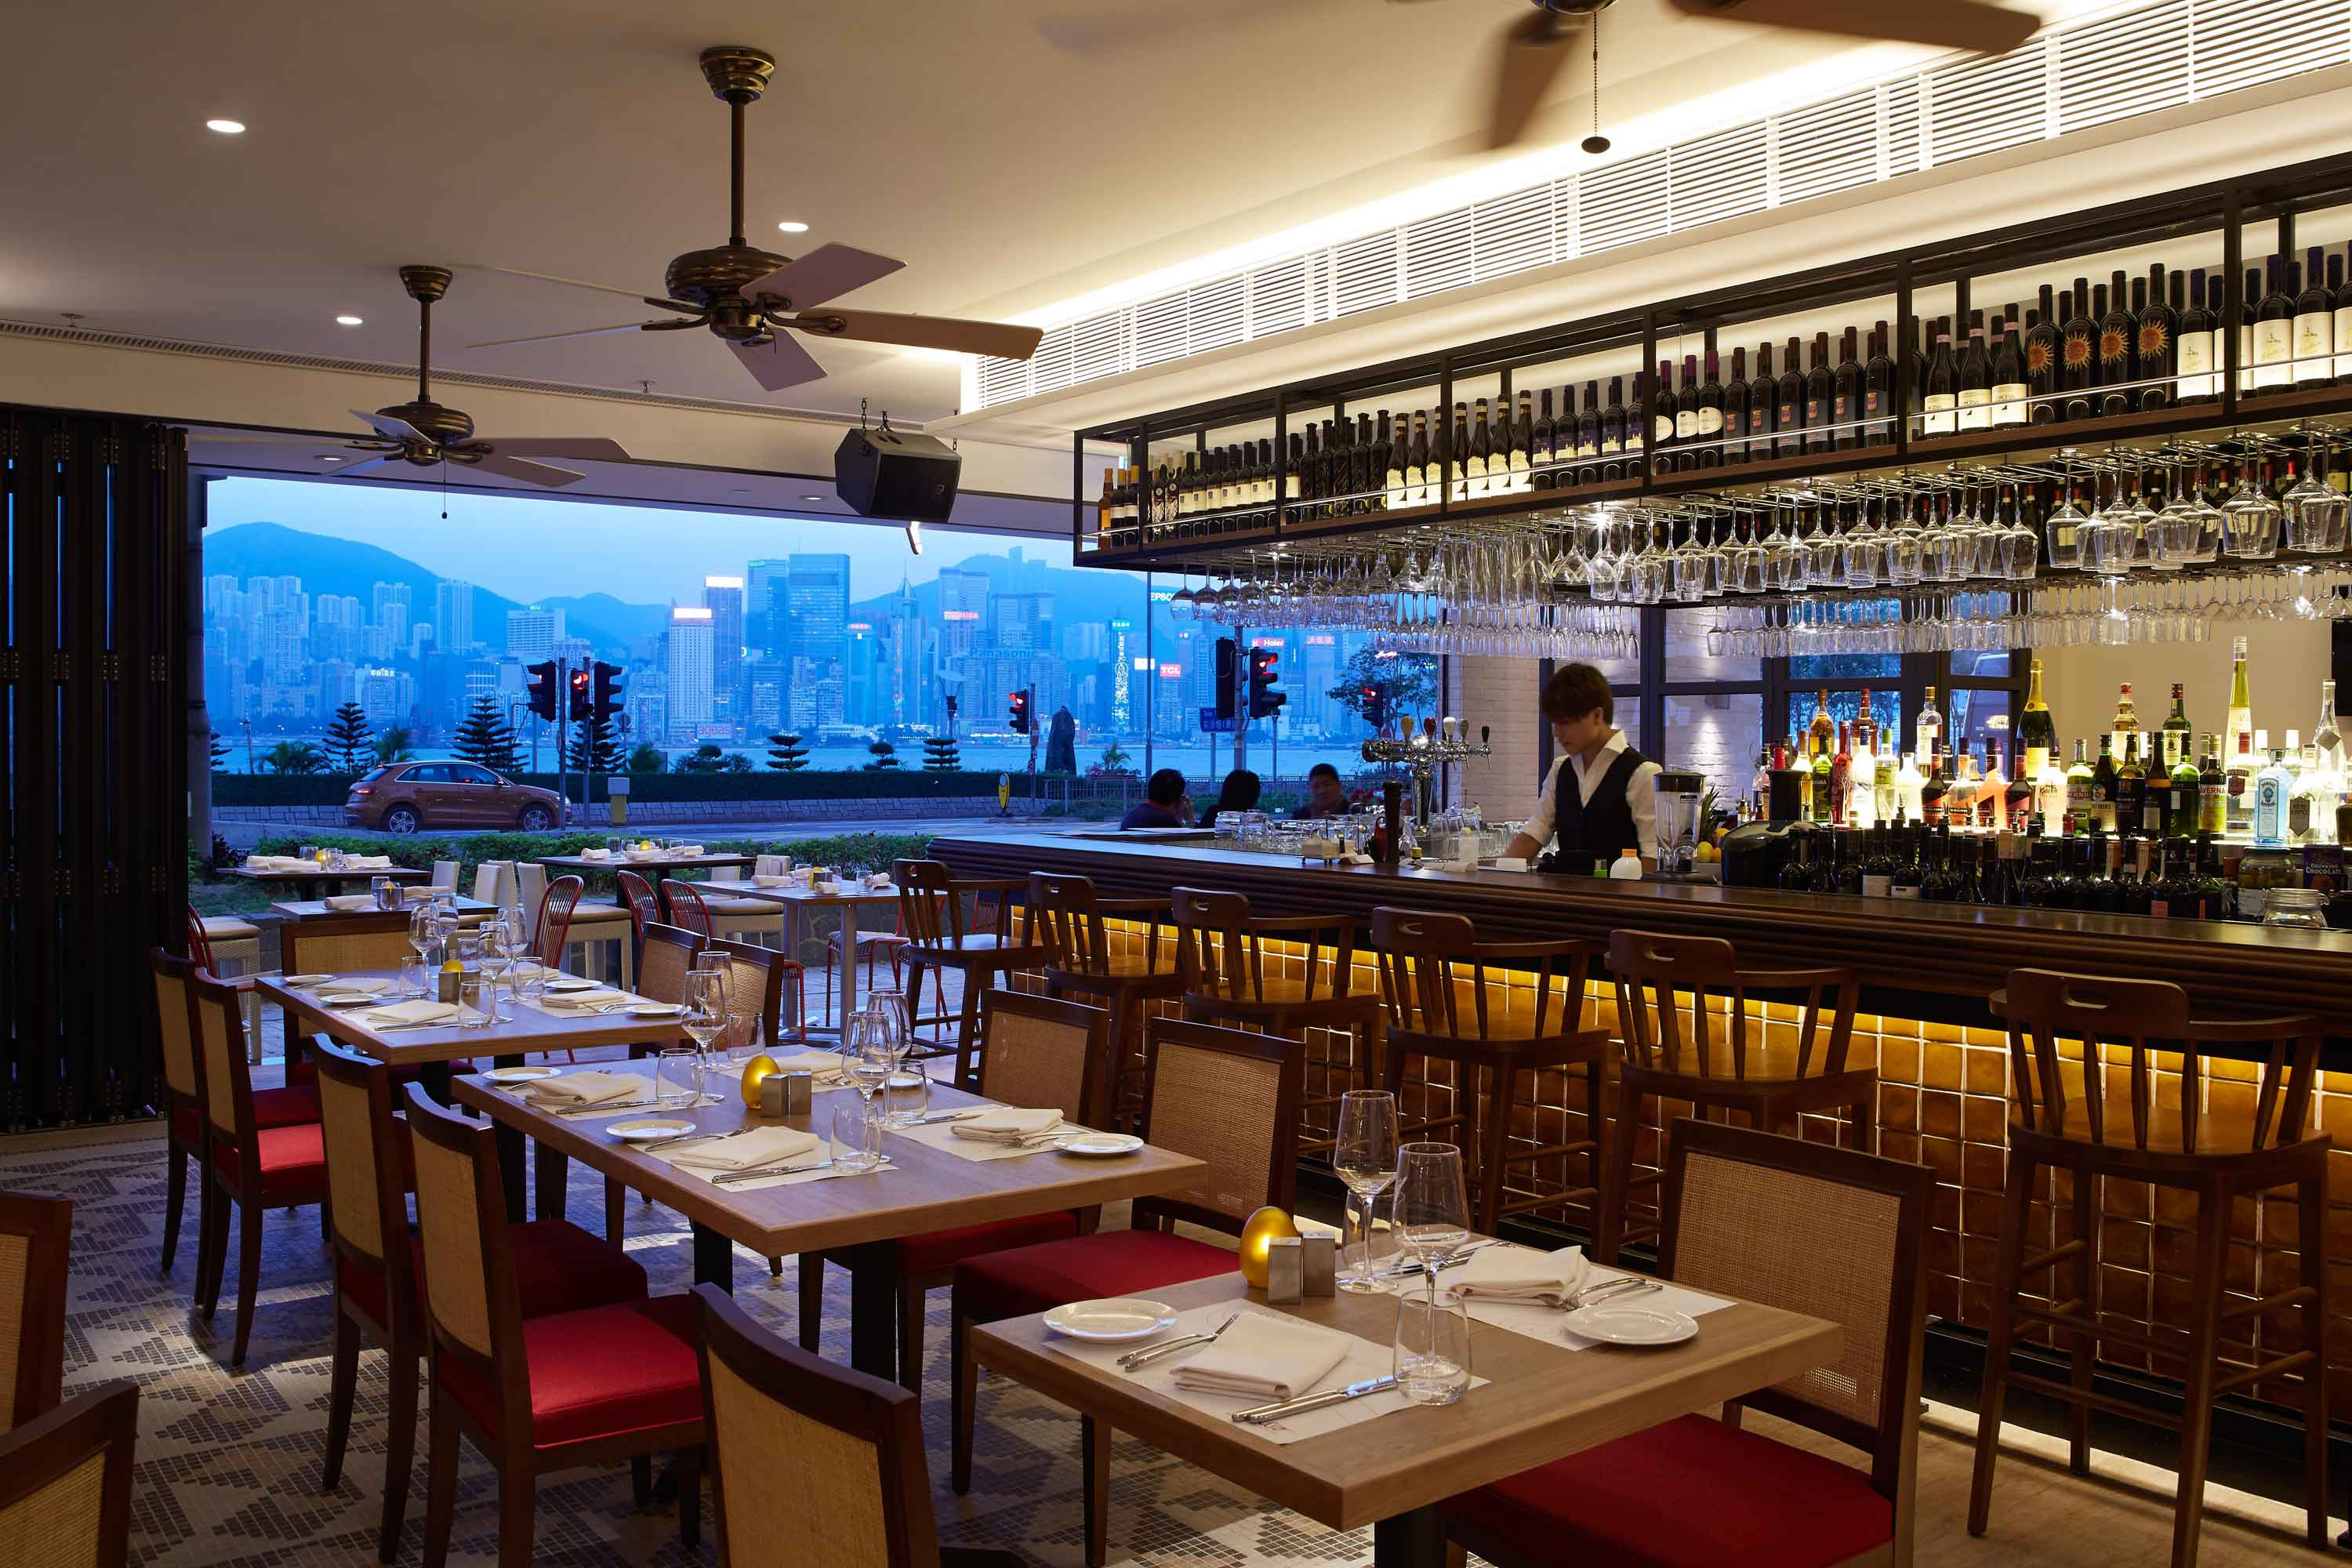 With a bar area that seats 50, after-work regulars welcome the return of the sundowners and aperitif hours.